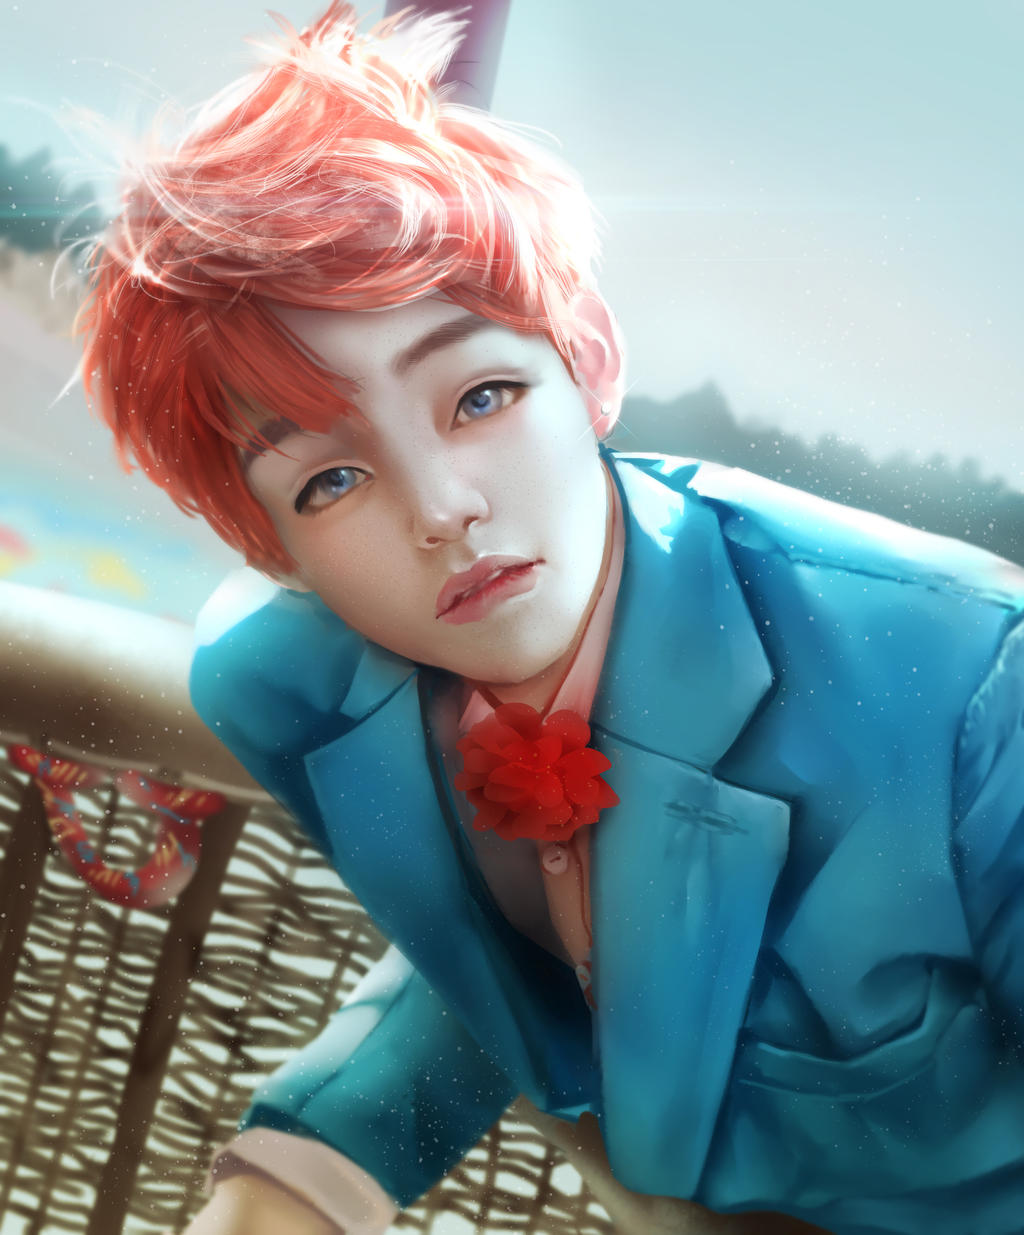 V Kim Taehyung Bts Photo Study By Renaillusion On Deviantart